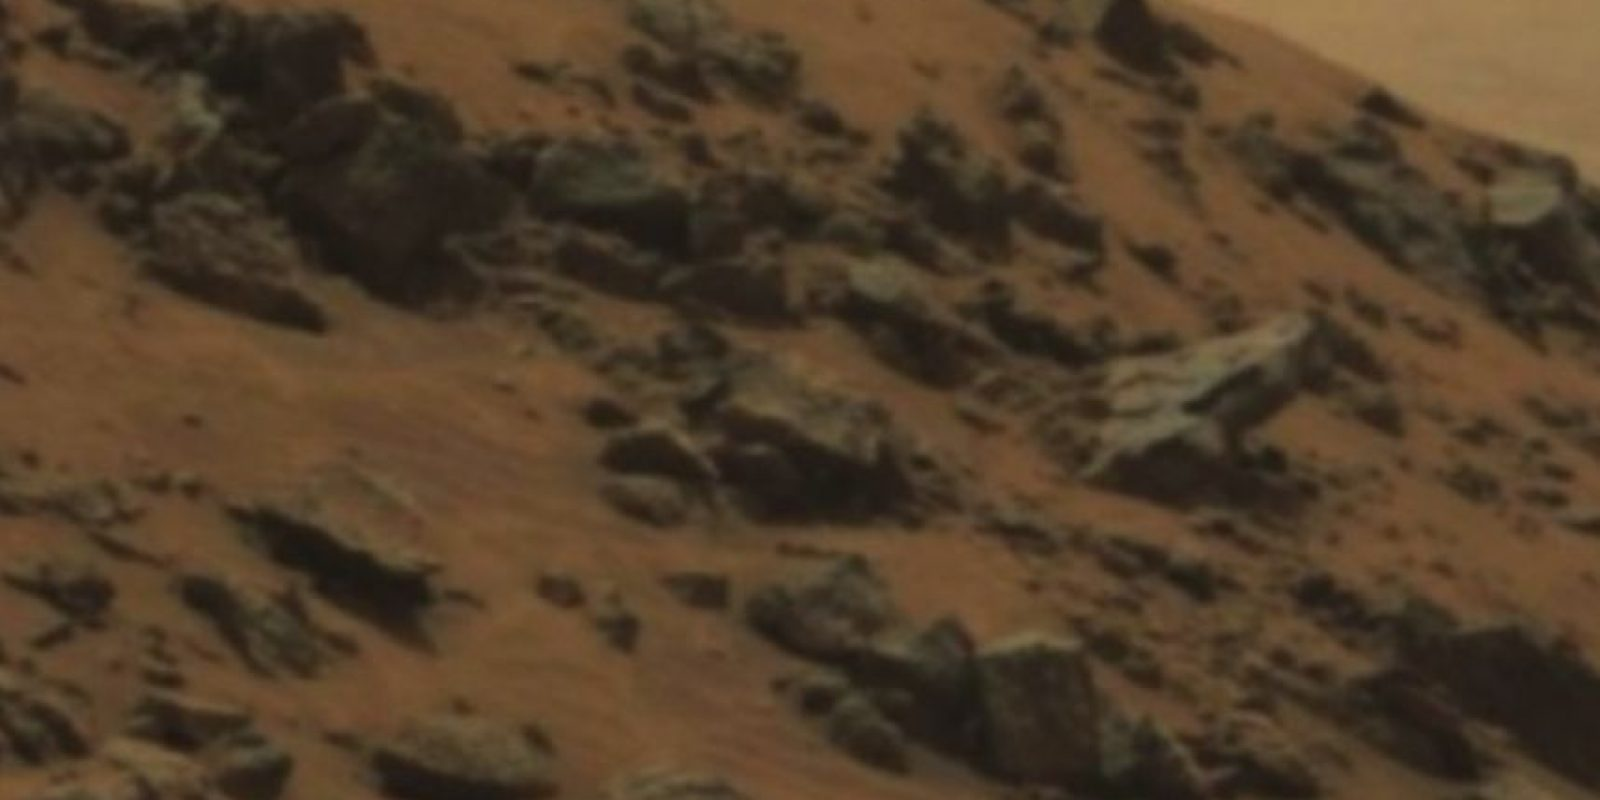 Foto: original en http://mars.nasa.gov/msl/multimedia/raw/?rawid=0978MR0043250040502821E01_DXXX&s=978